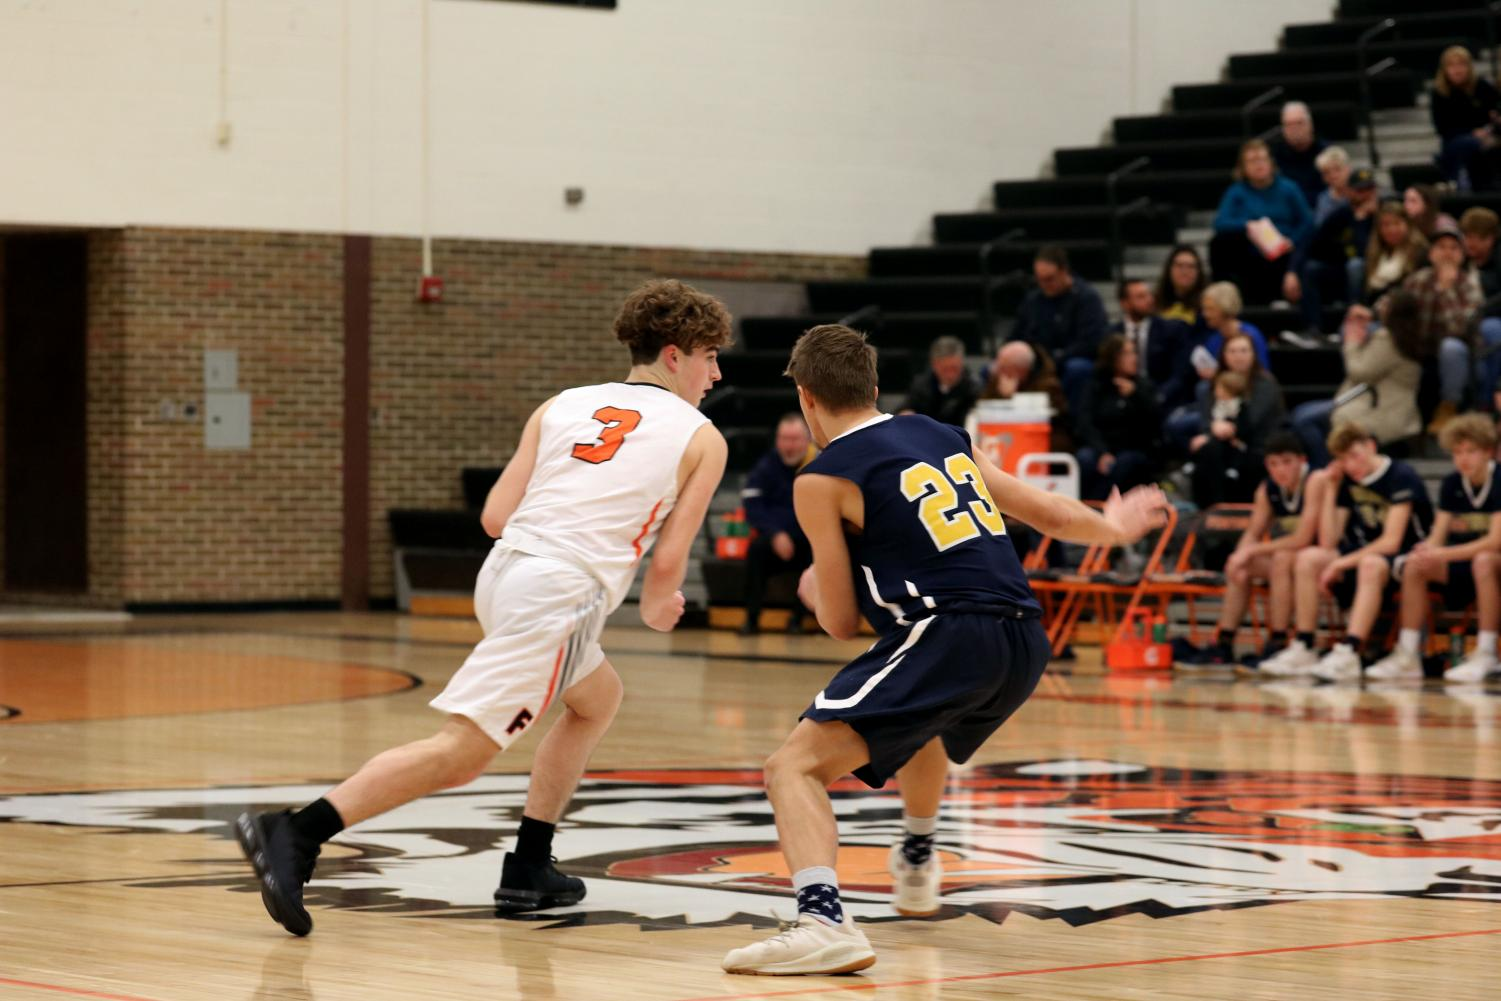 Sophomore Calvin Curtis dribbles the ball to the basket from the defender. On Jan. 7, the Fenton Tigers JV boys basketball team won against Goodrich.